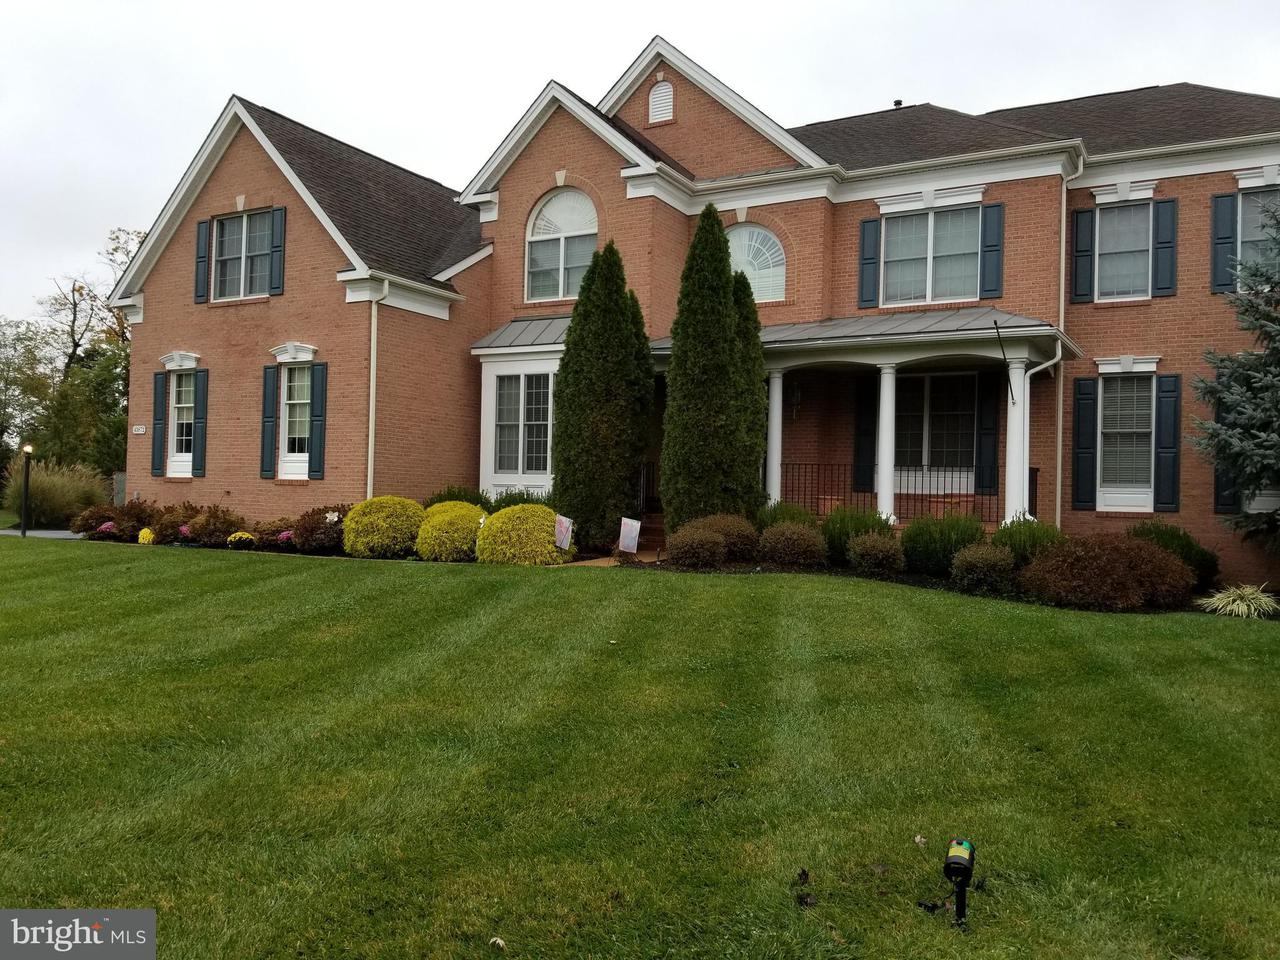 Maison unifamiliale pour l Vente à 43872 Ashlawn Court 43872 Ashlawn Court Ashburn, Virginia 20147 États-Unis